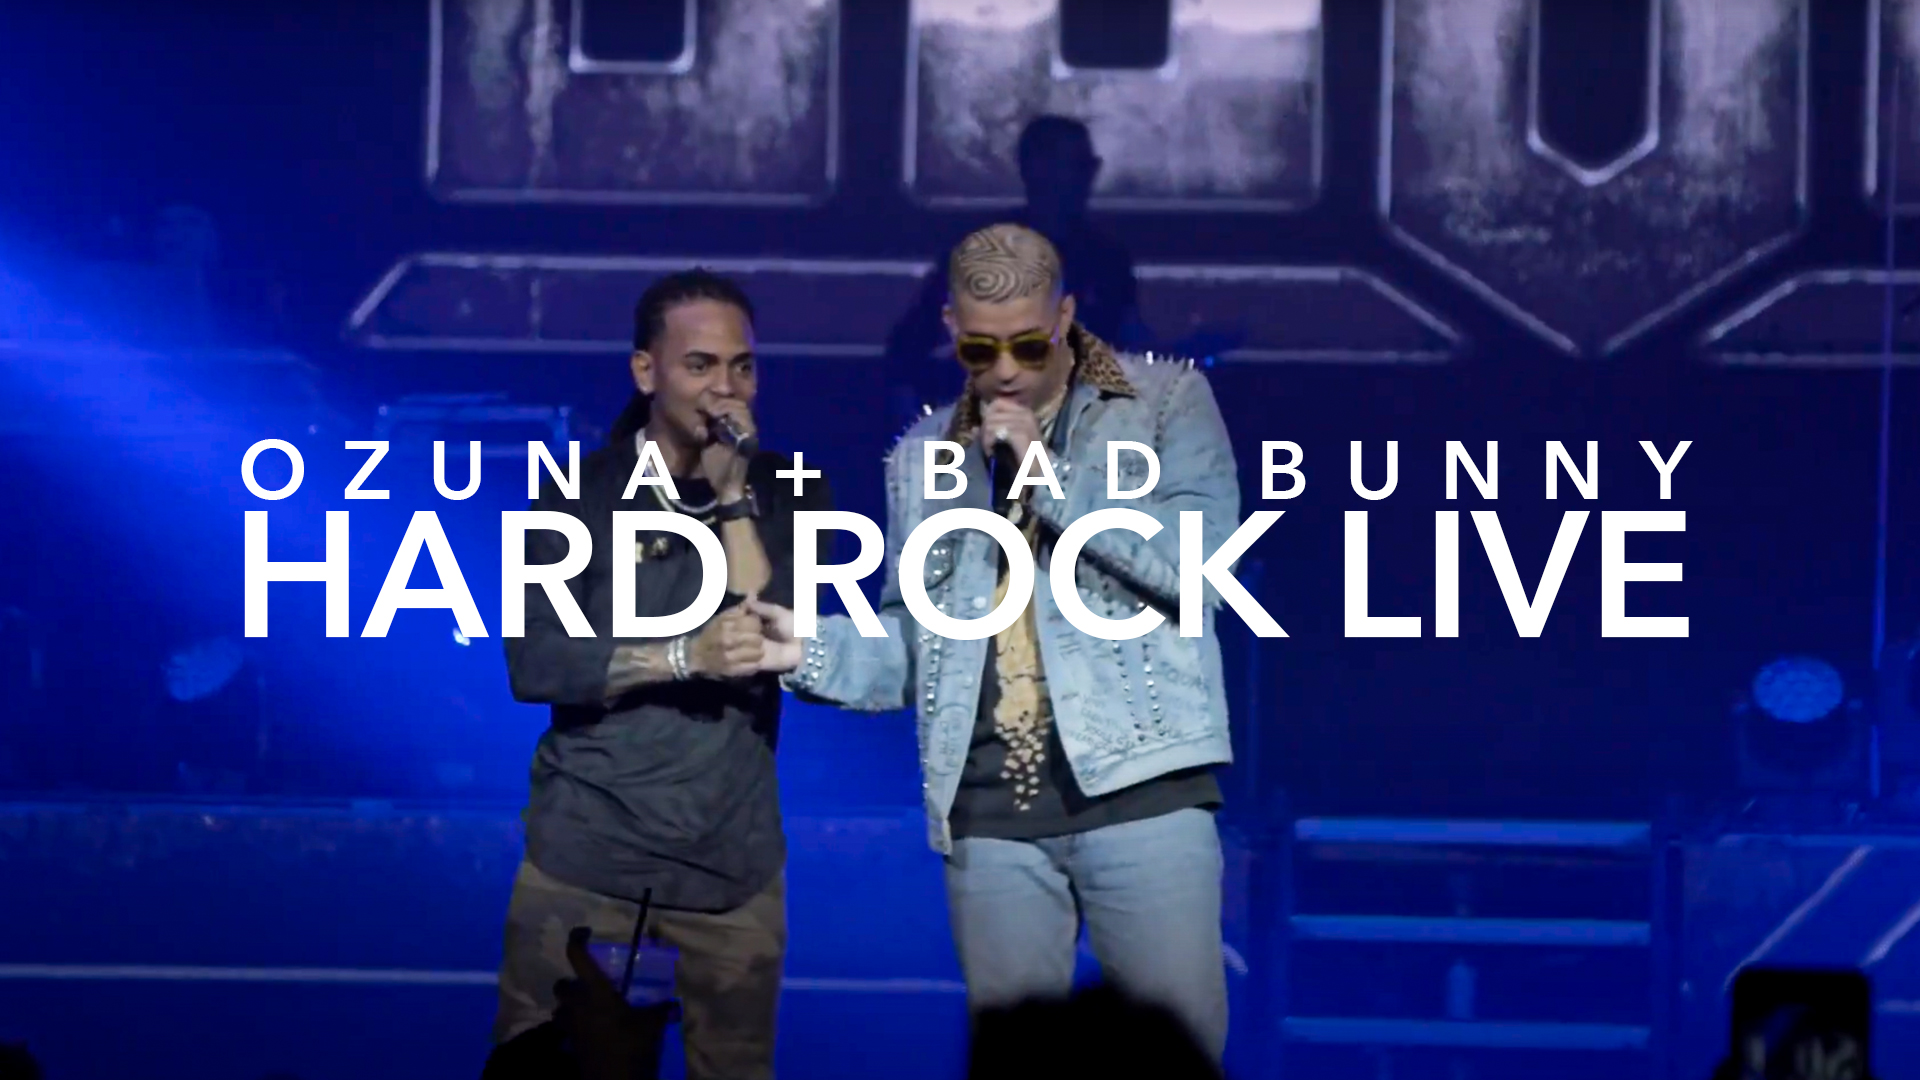 OZUNA + BAD BUNNY + HARD ROCK LIVE